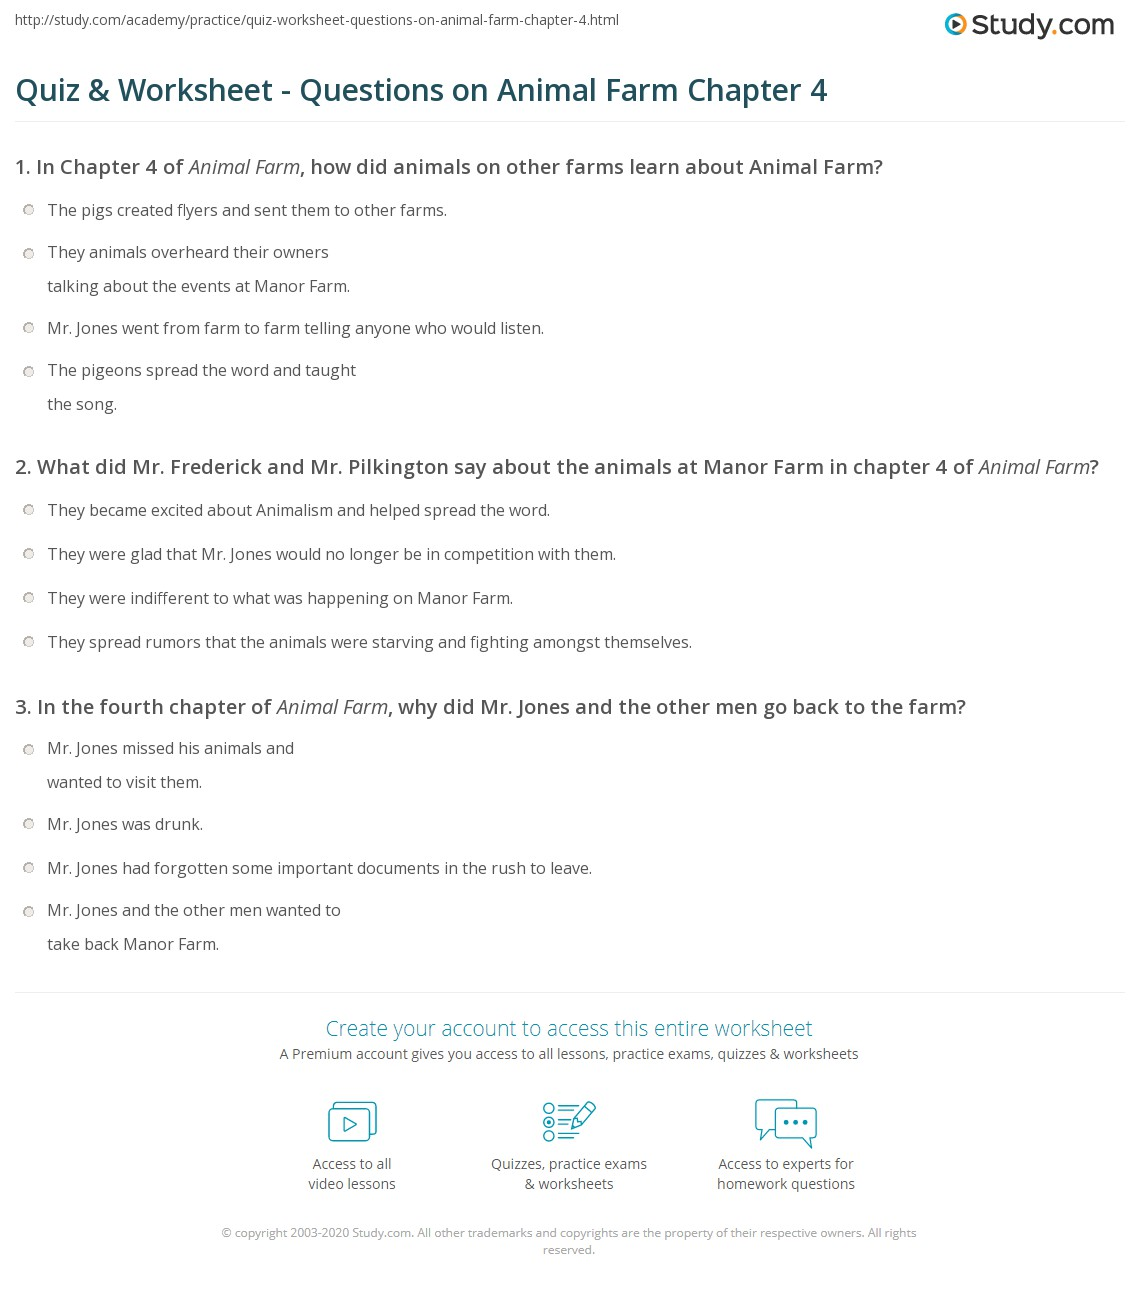 Printables Animal Farm Worksheets Happywheelsfreak